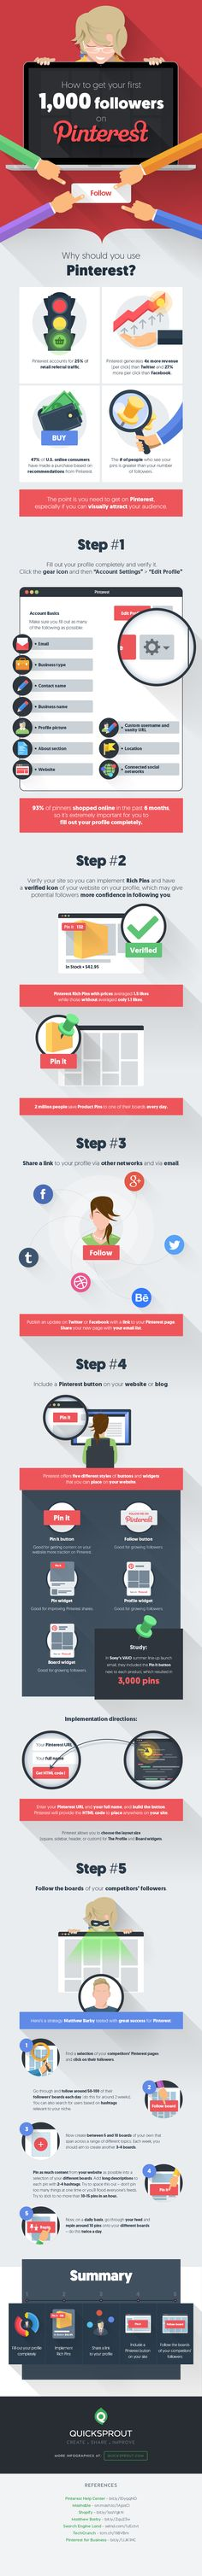 5 Proven Ways To Get More Followers On Pinterest - #infographic